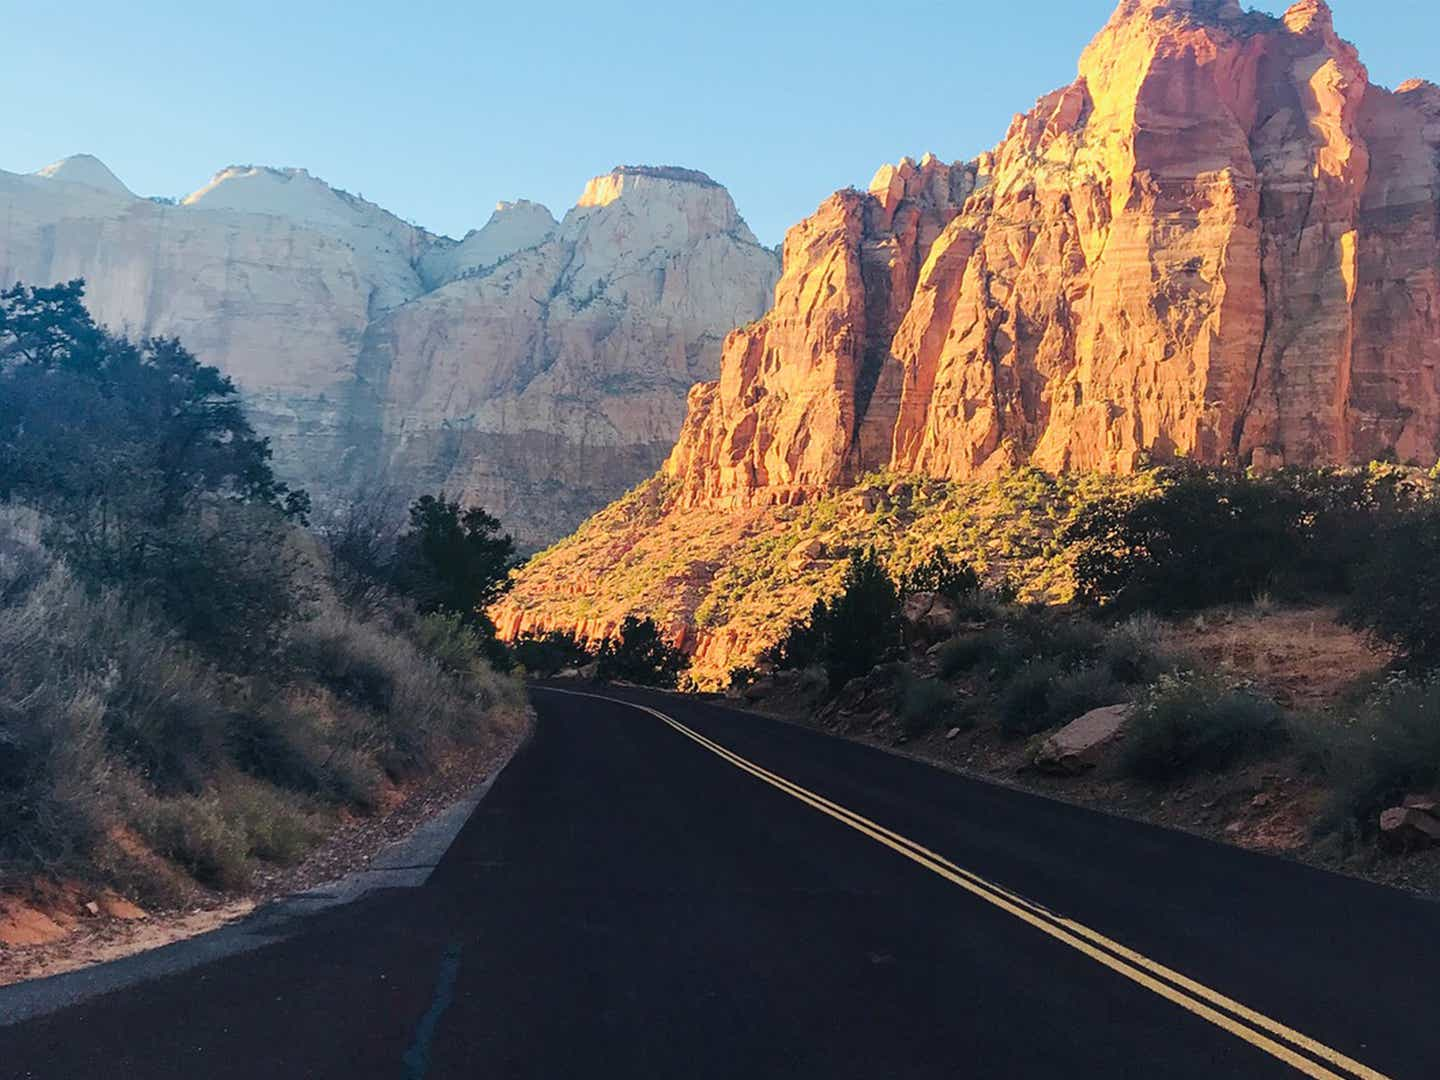 Zion from the road